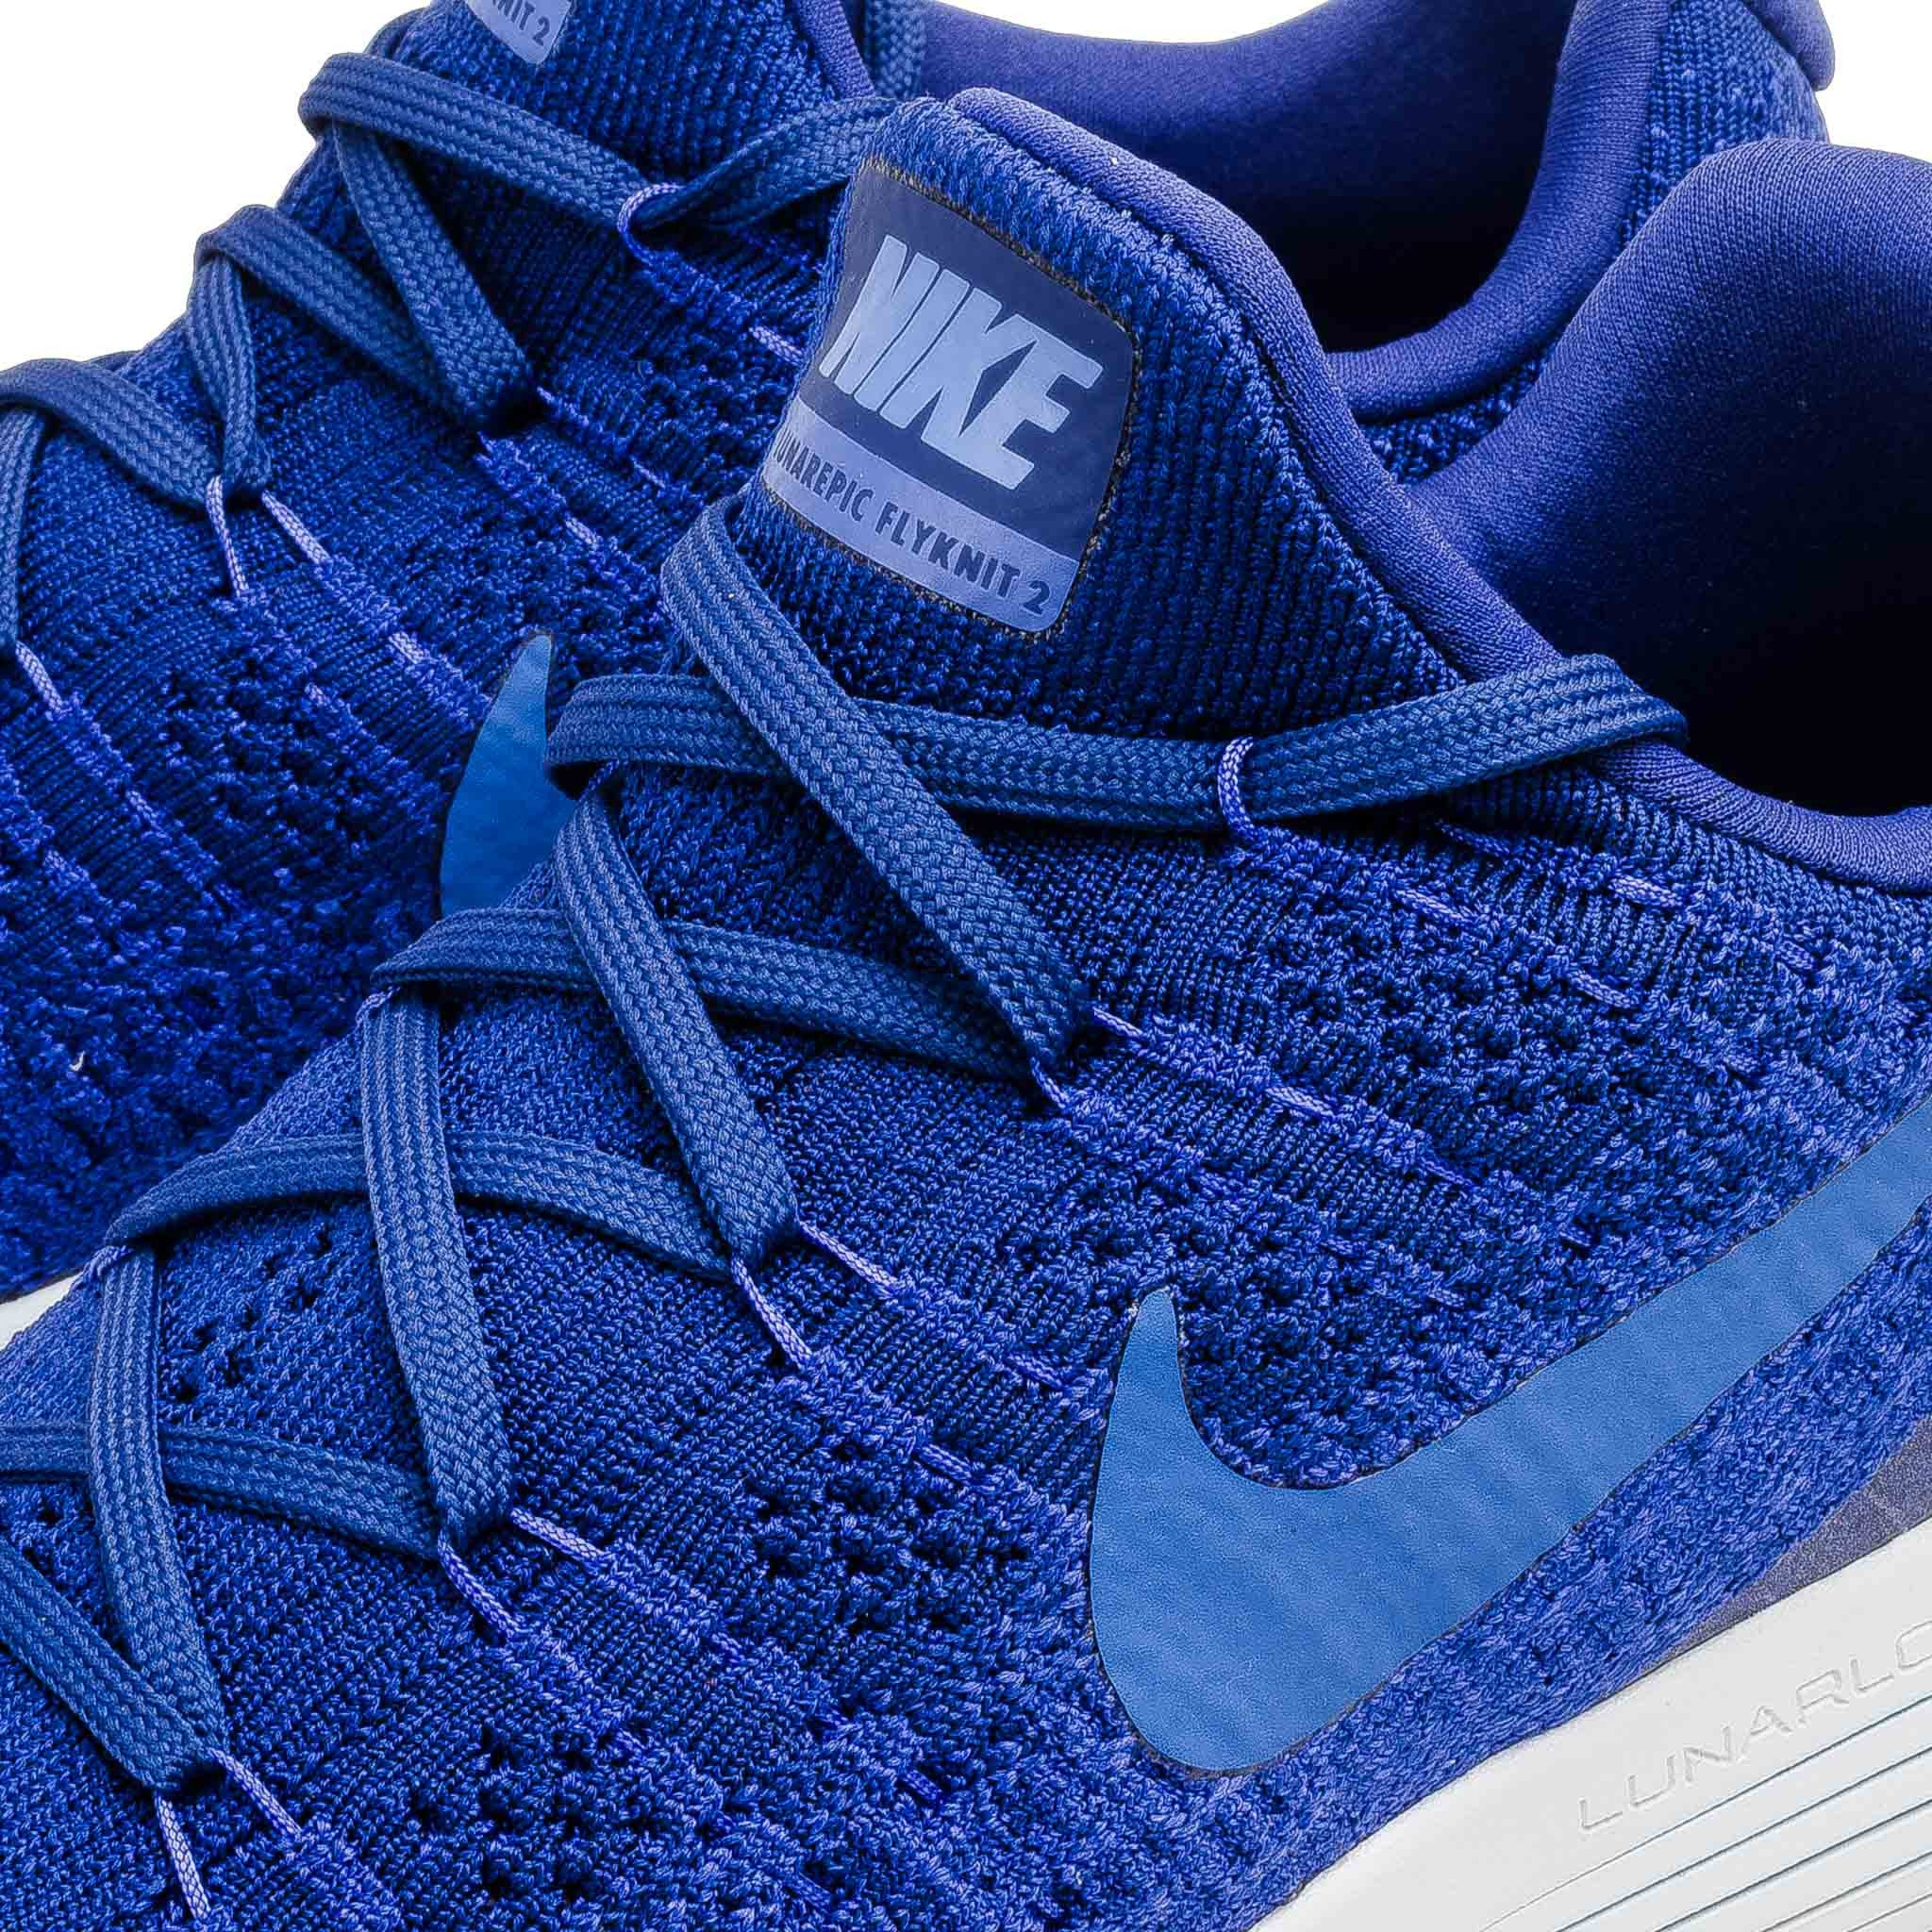 Nike Lunarepic Low Flyknit 863779-400 Blue